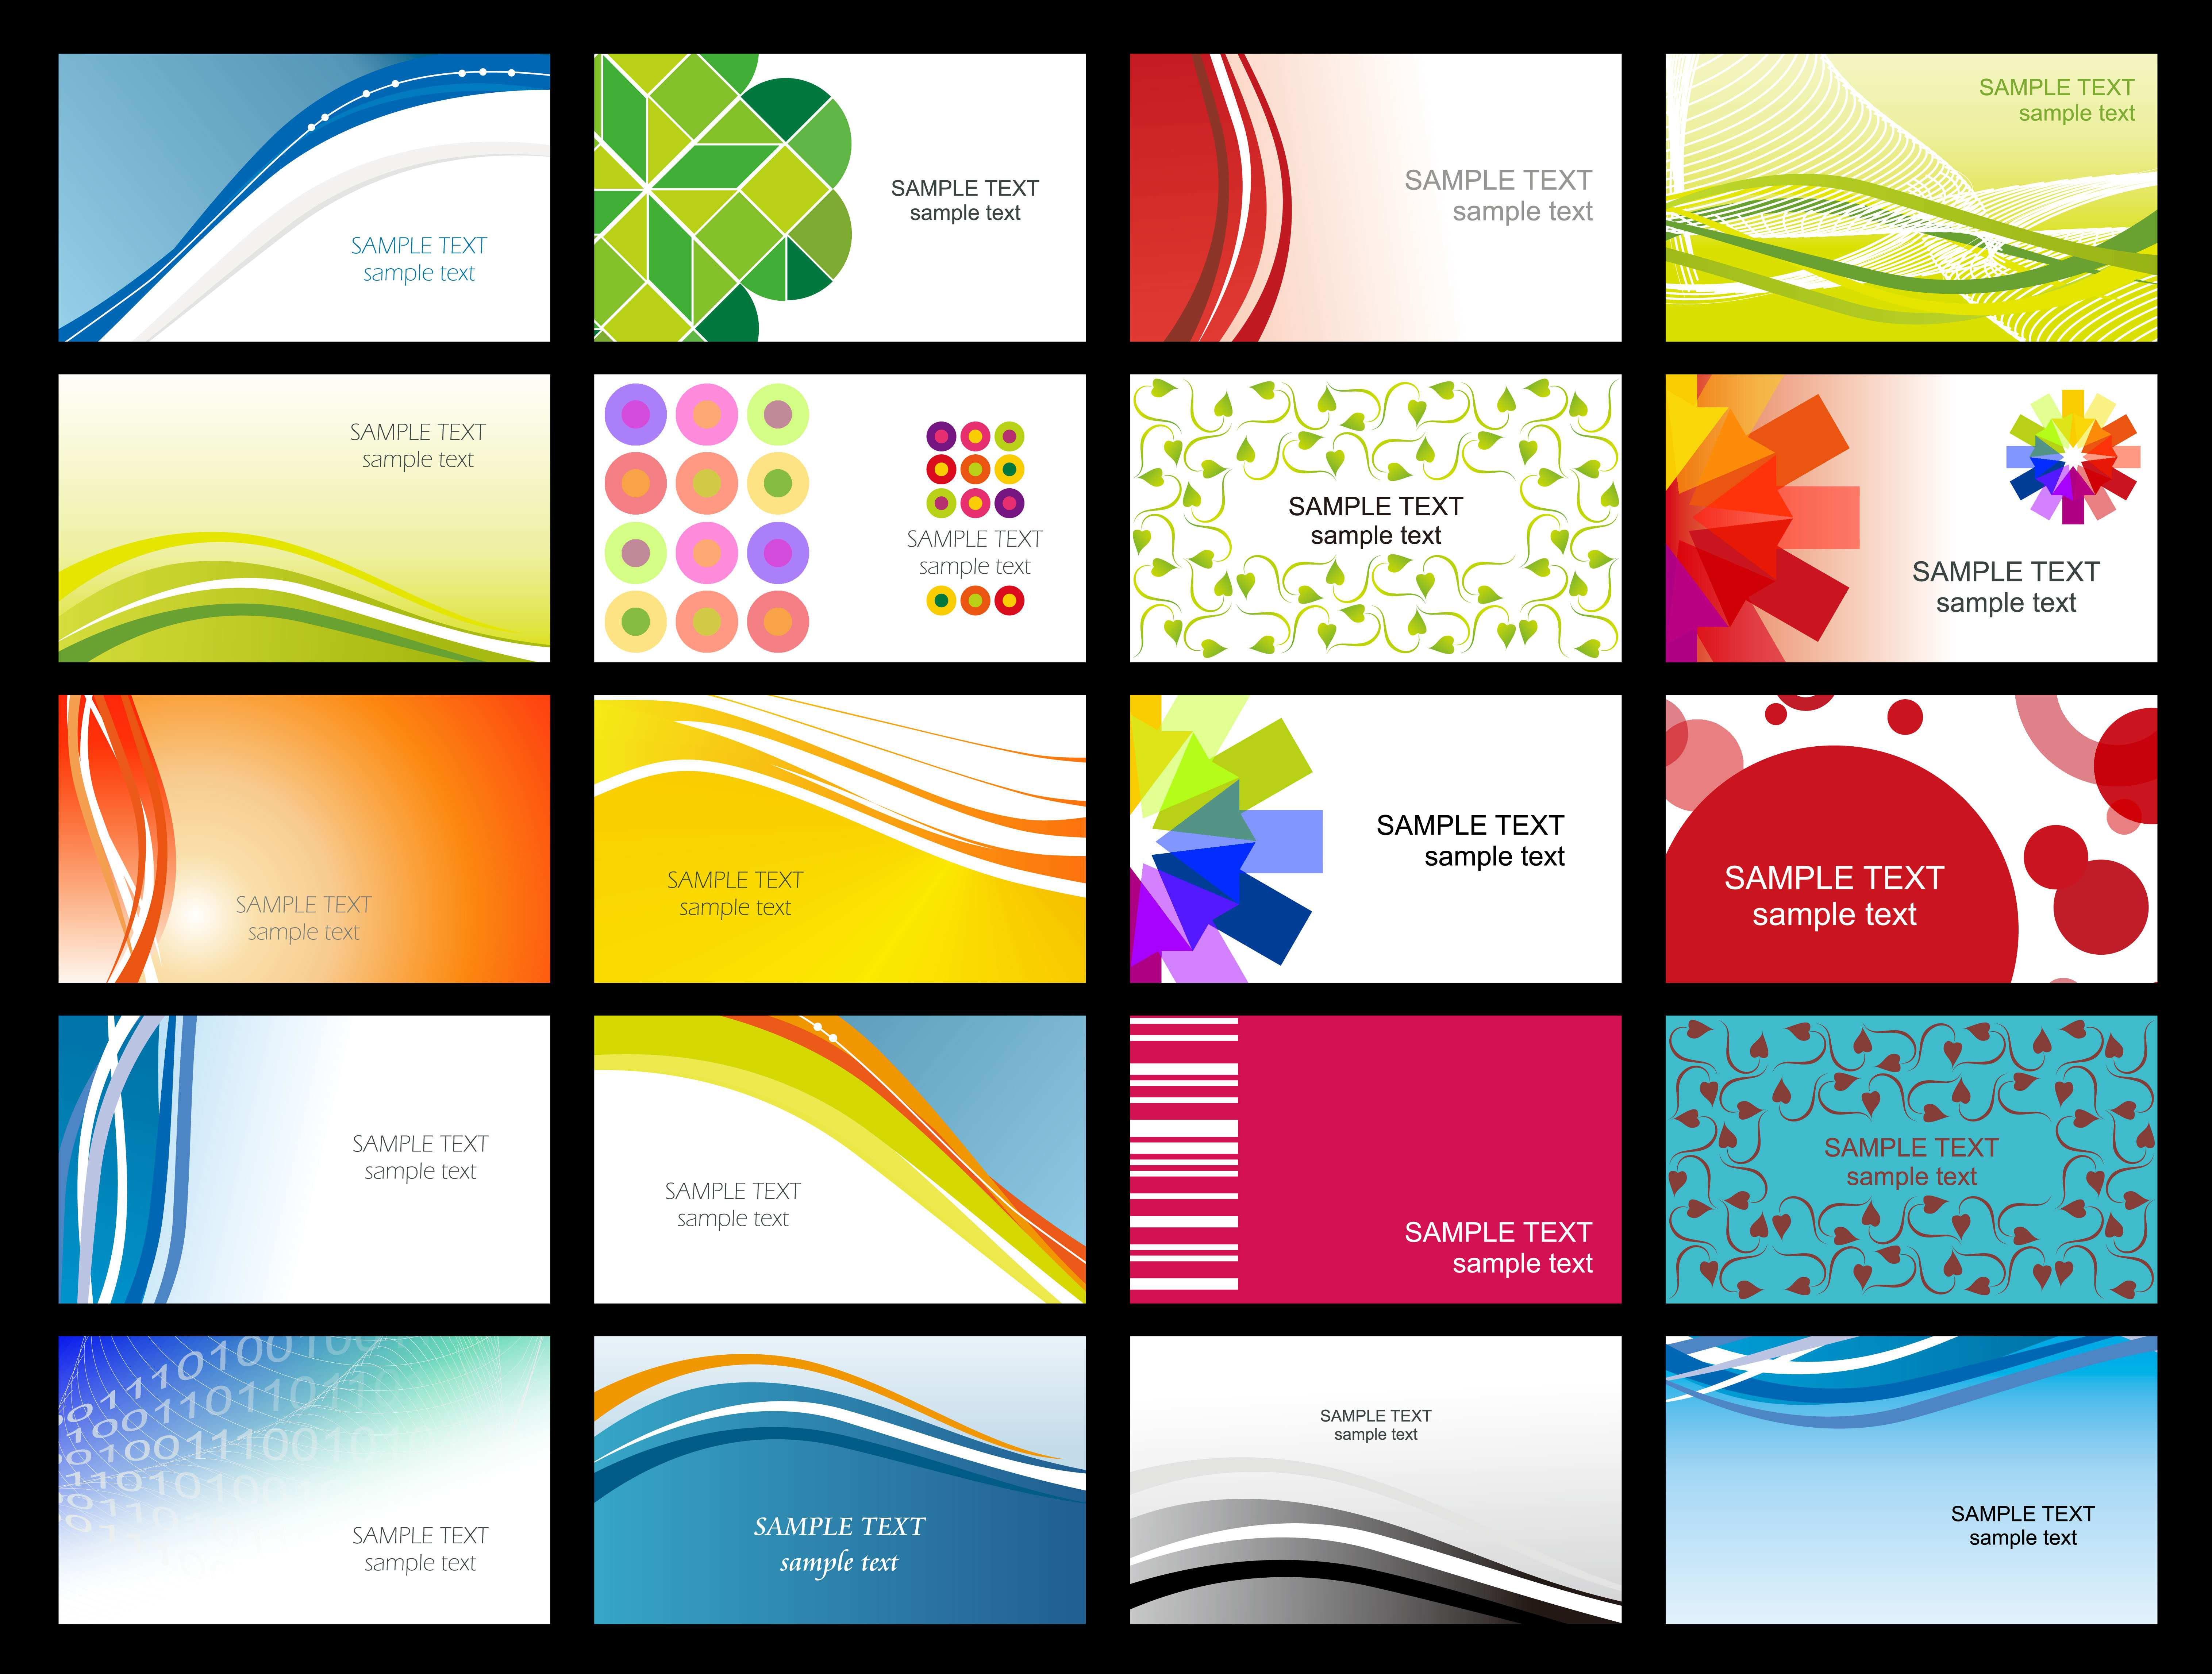 55 Visiting Business Card Templates Free And Printable Maker for Business Card Templates Free And Printable